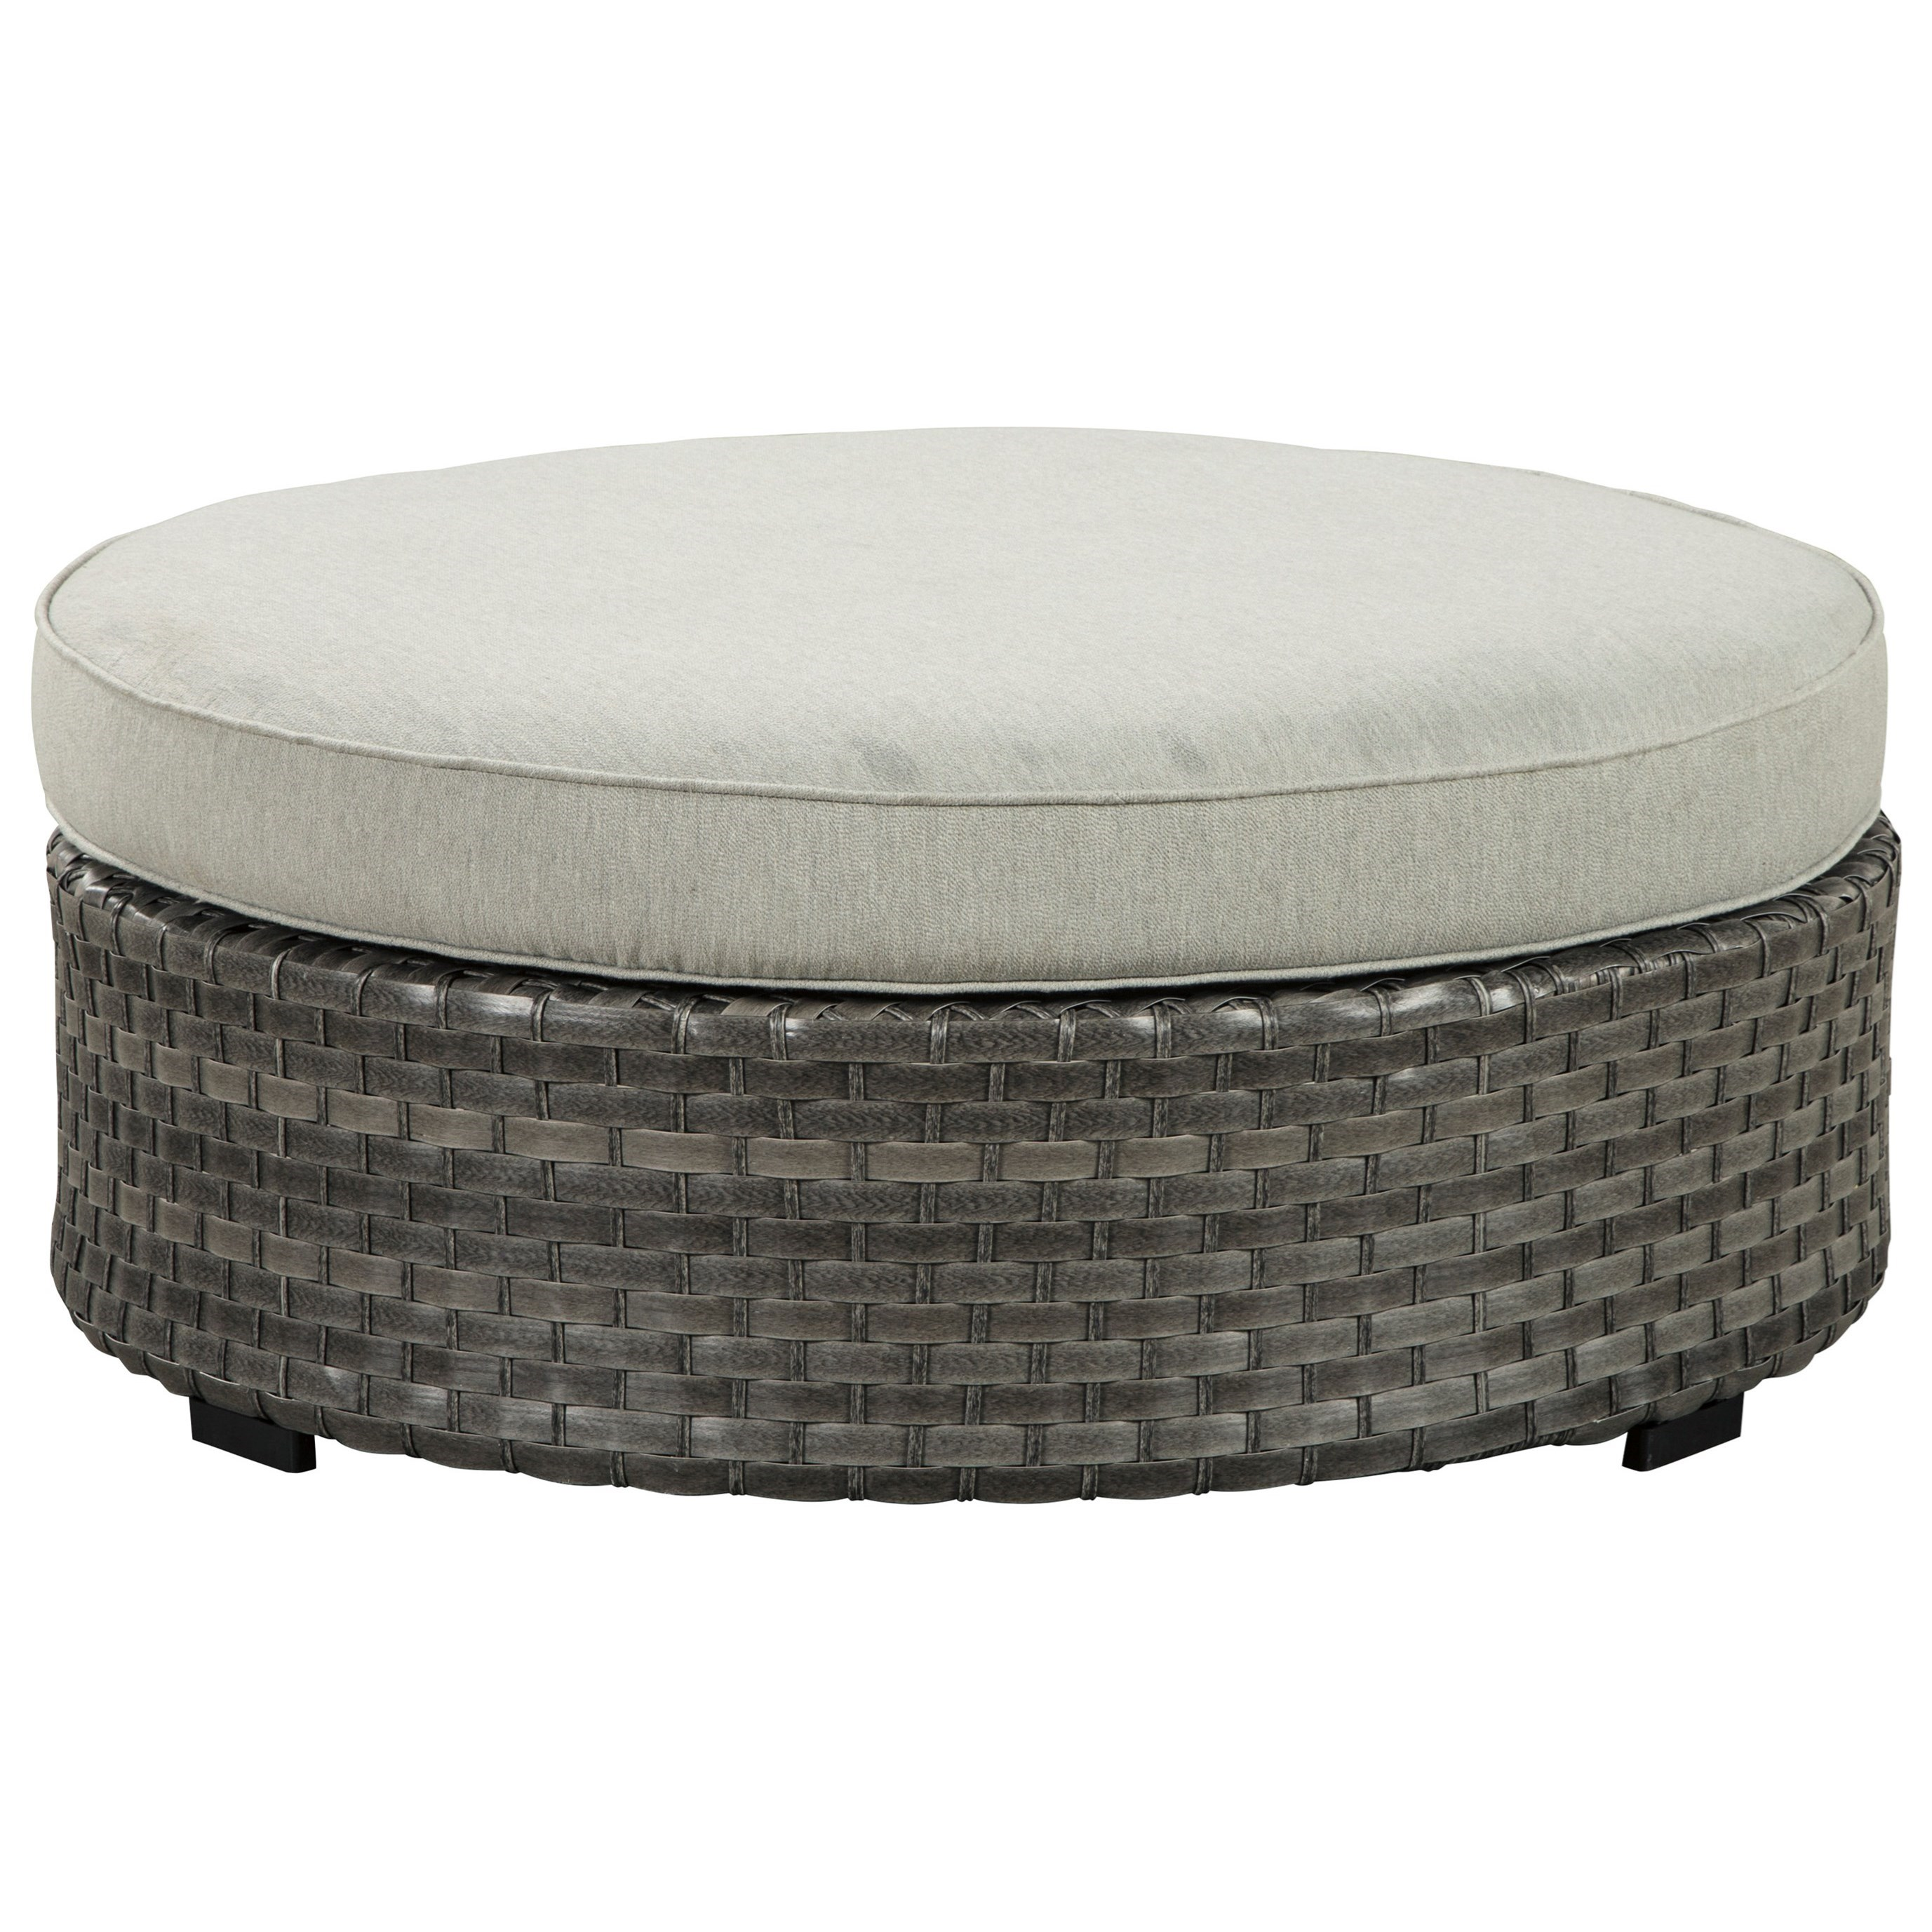 Signature Design by Ashley Spring Dew Ottoman with Cushion - Item Number: P453-814